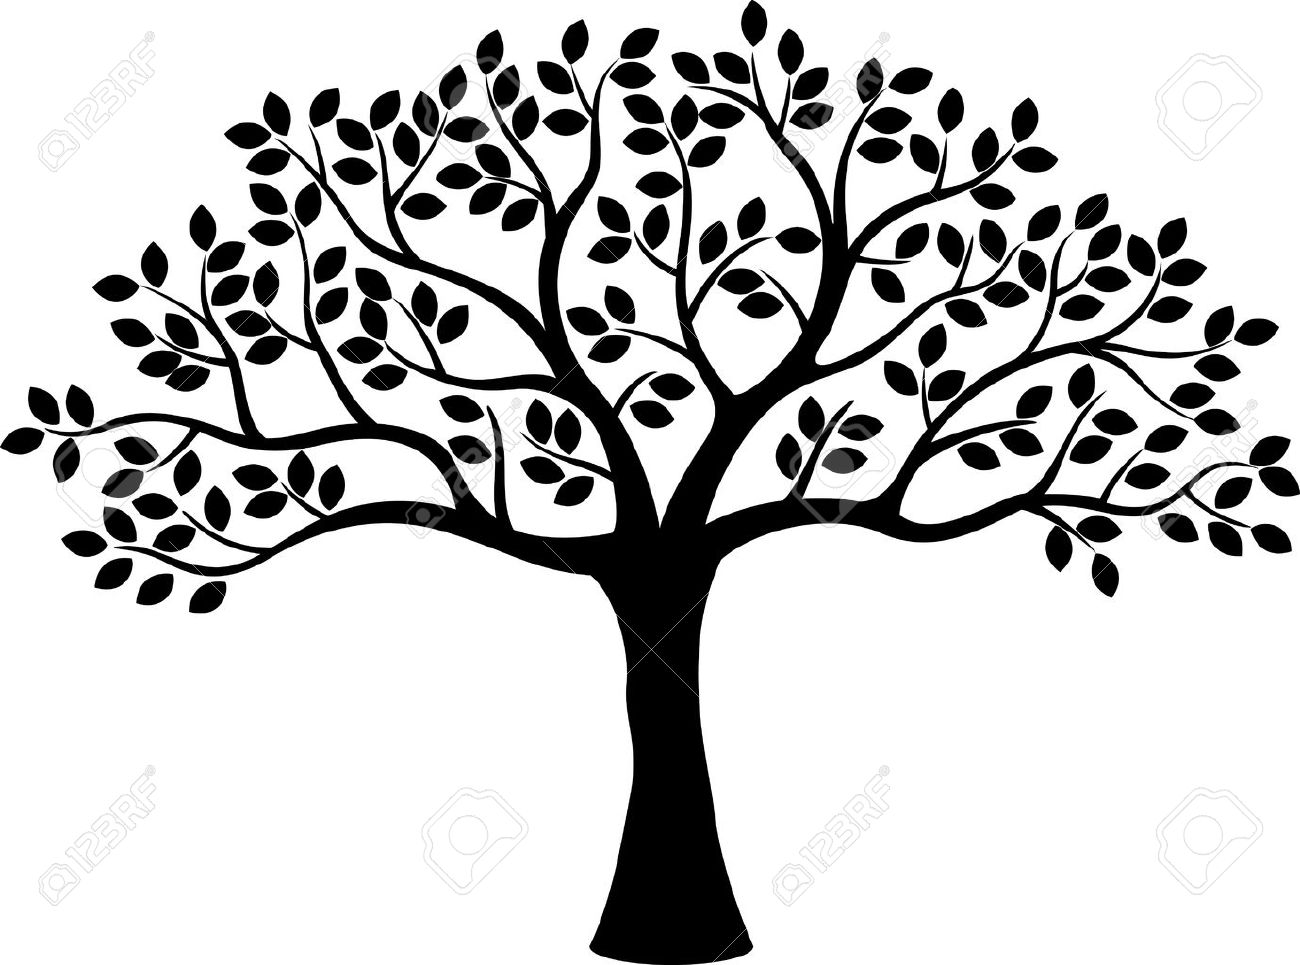 tree silhouette royalty free cliparts vectors and stock rh 123rf com free vector tree brush free vector tree art